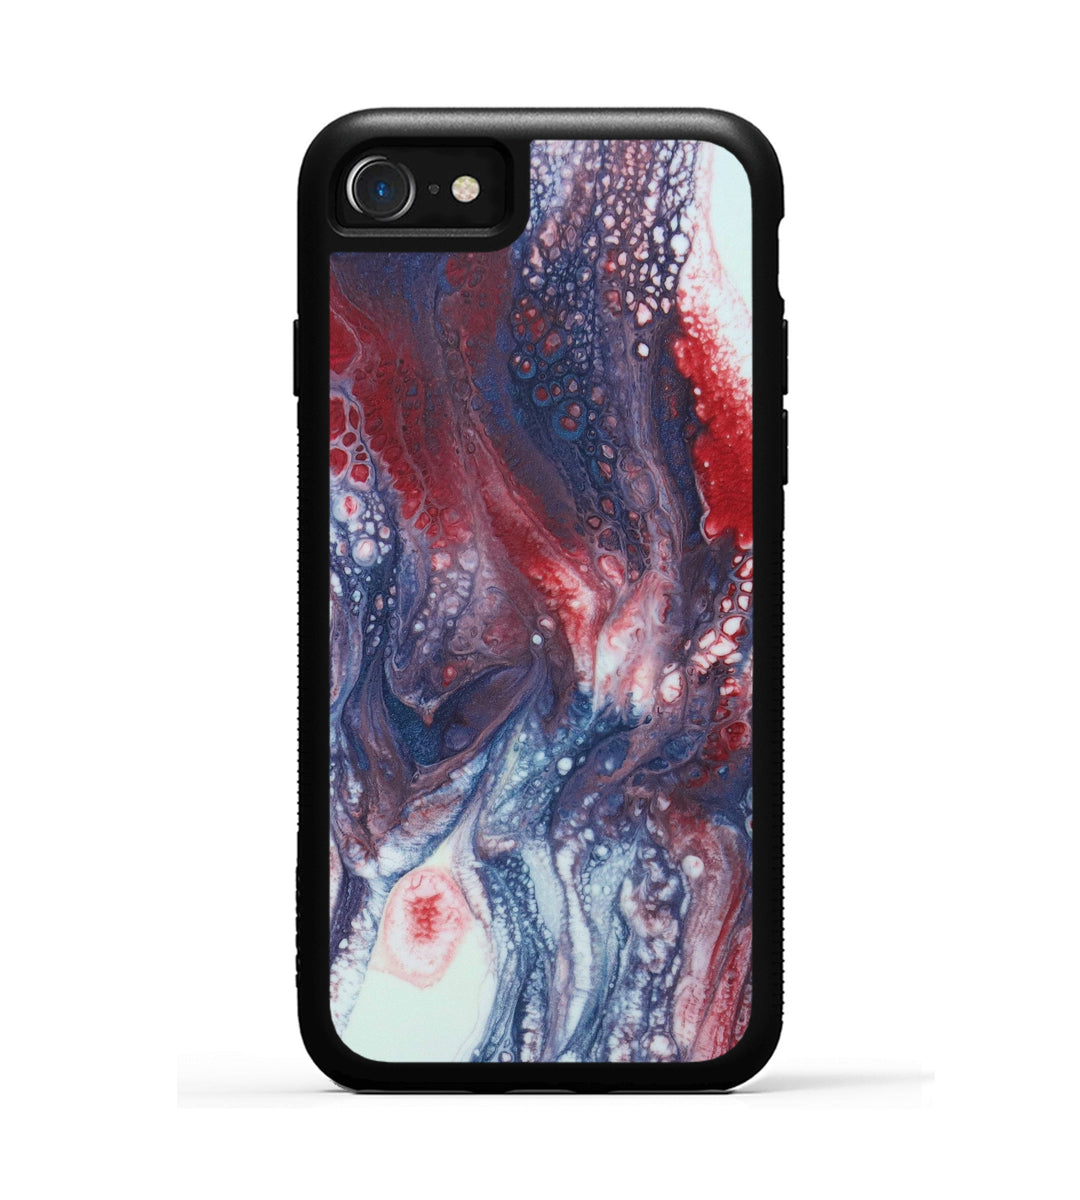 iPhone 8 Case - Nari (Blue & Red, 346379)